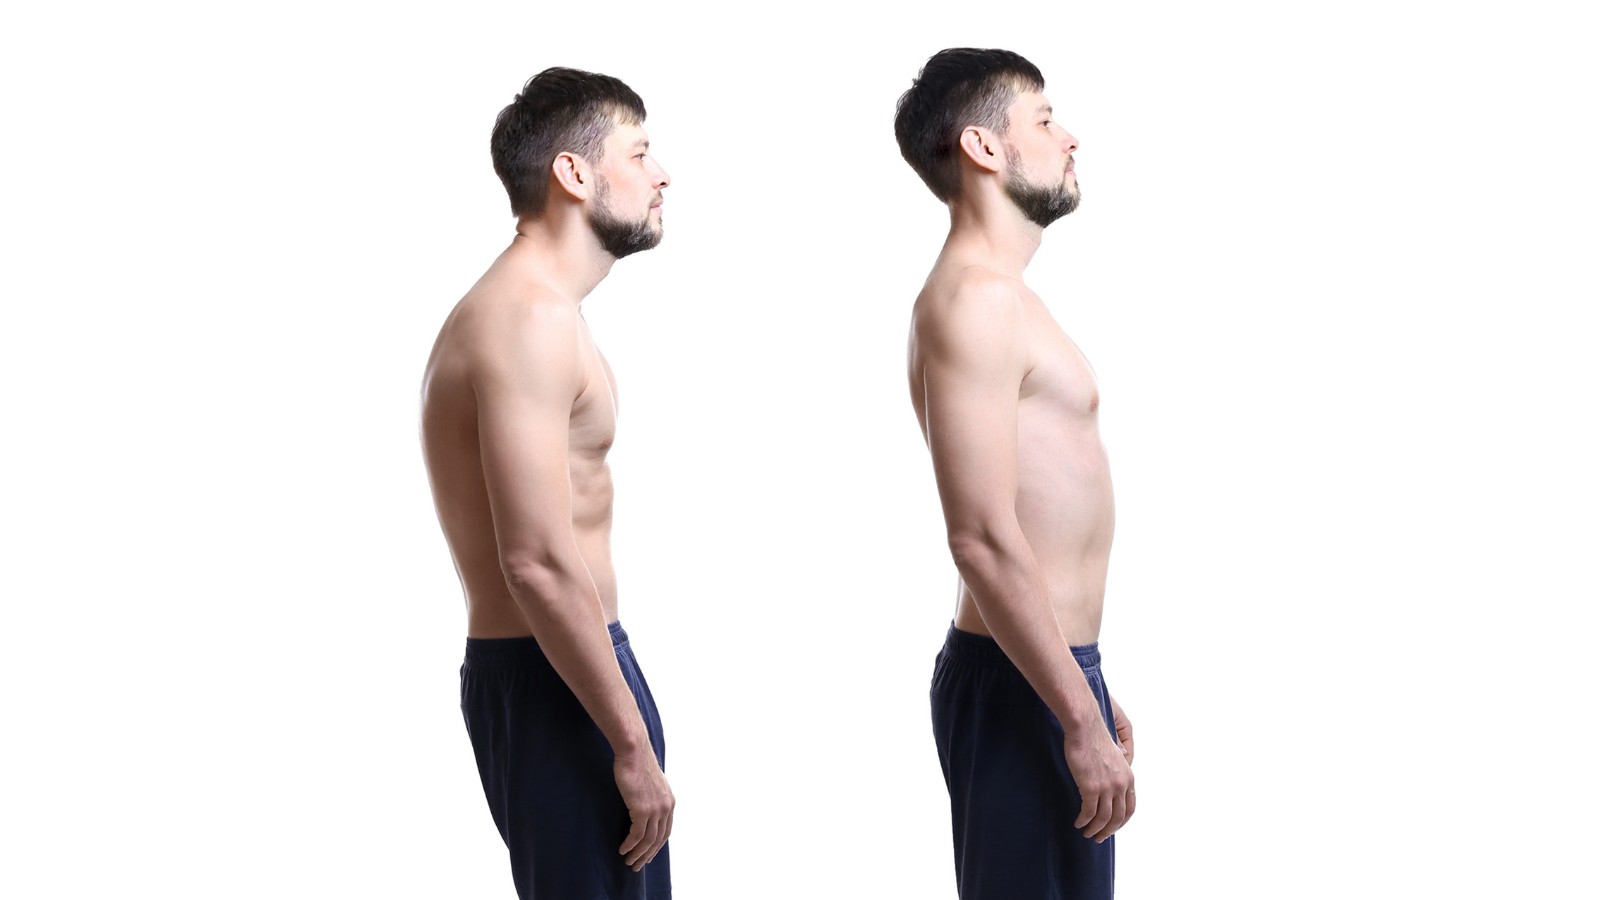 Collage of man with poor and good posture on white background